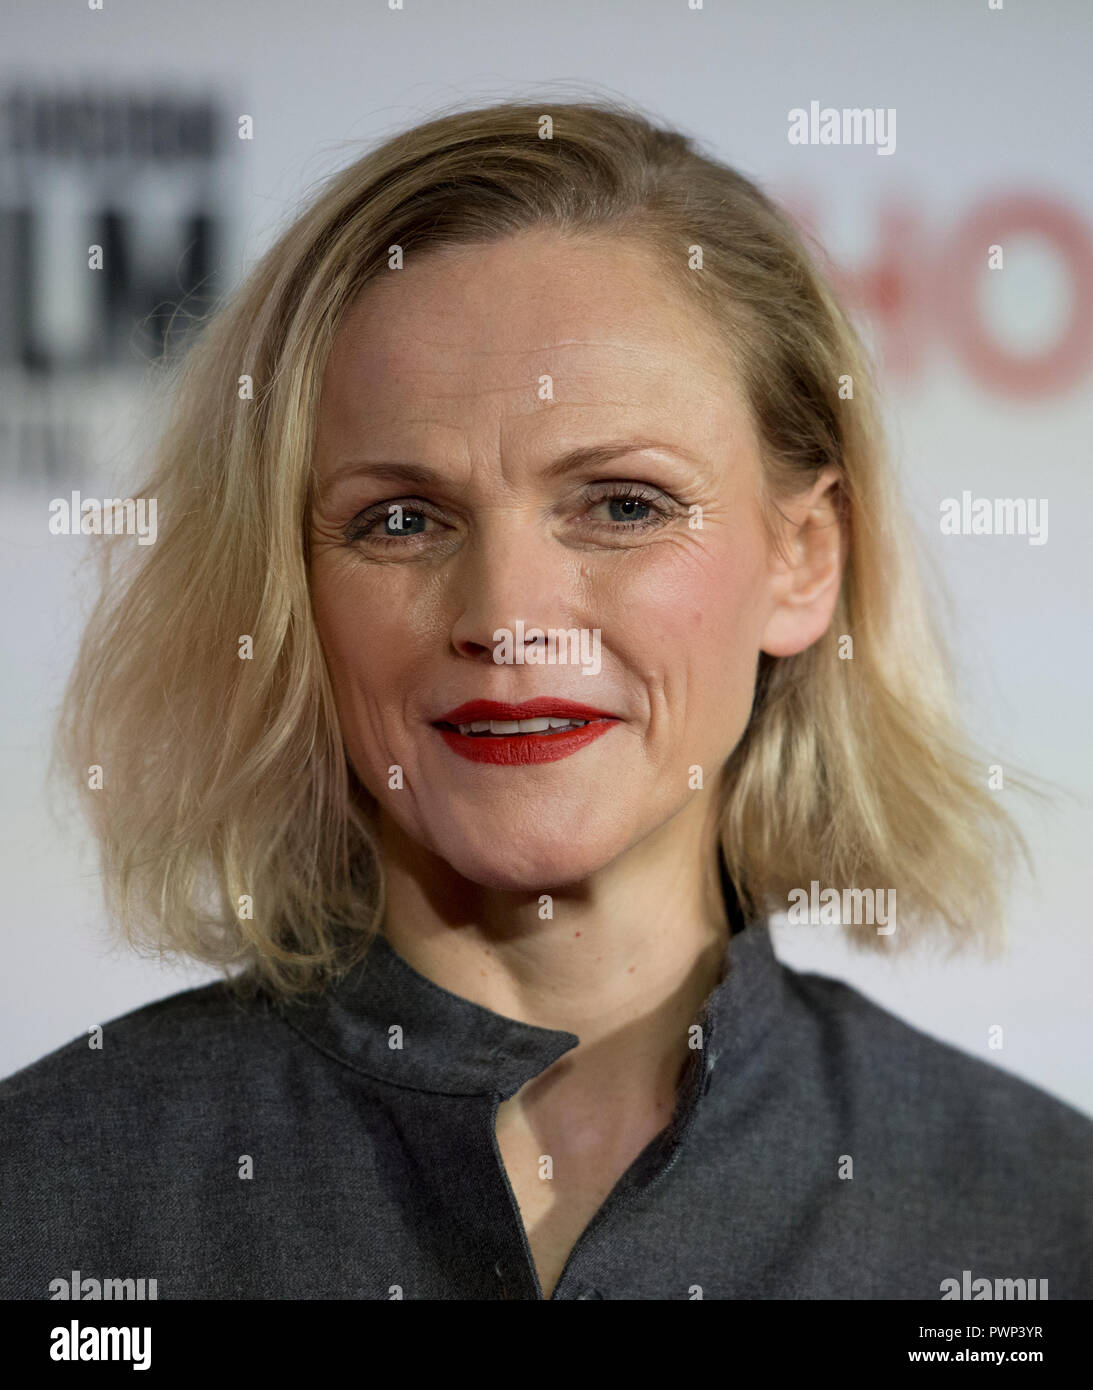 Manchester, UK. 17th October 2018. Actress Maxine Peake who plays the character Nellie arrives at the BFI London Film Festival premiere of Peterloo, at the Home complex in Manchester. Credit: Russell Hart/Alamy Live News - Stock Image